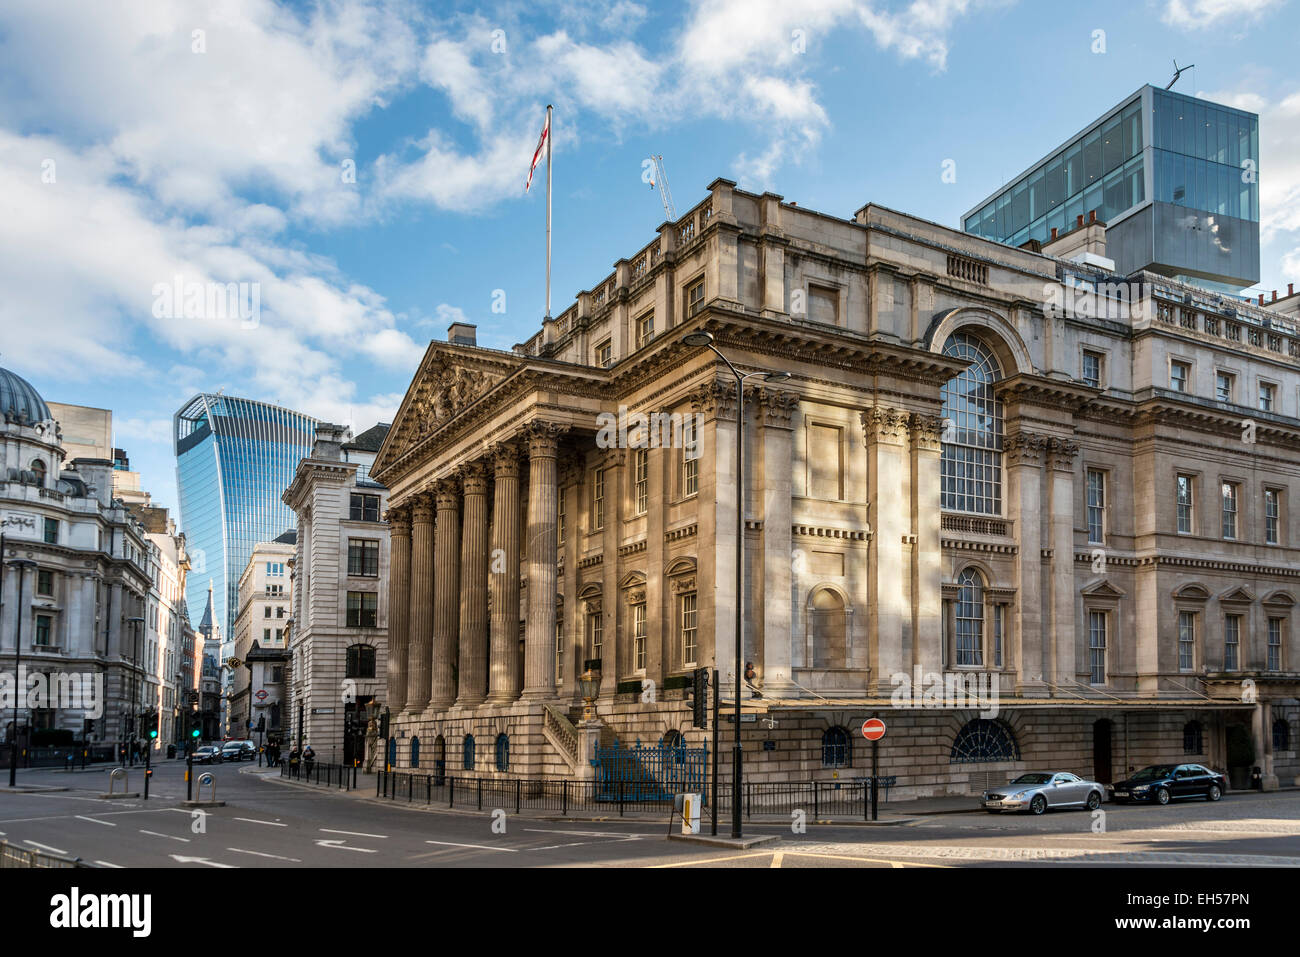 The Mansion House in the City of London and is the official residence of the Lord Mayor of London - Stock Image